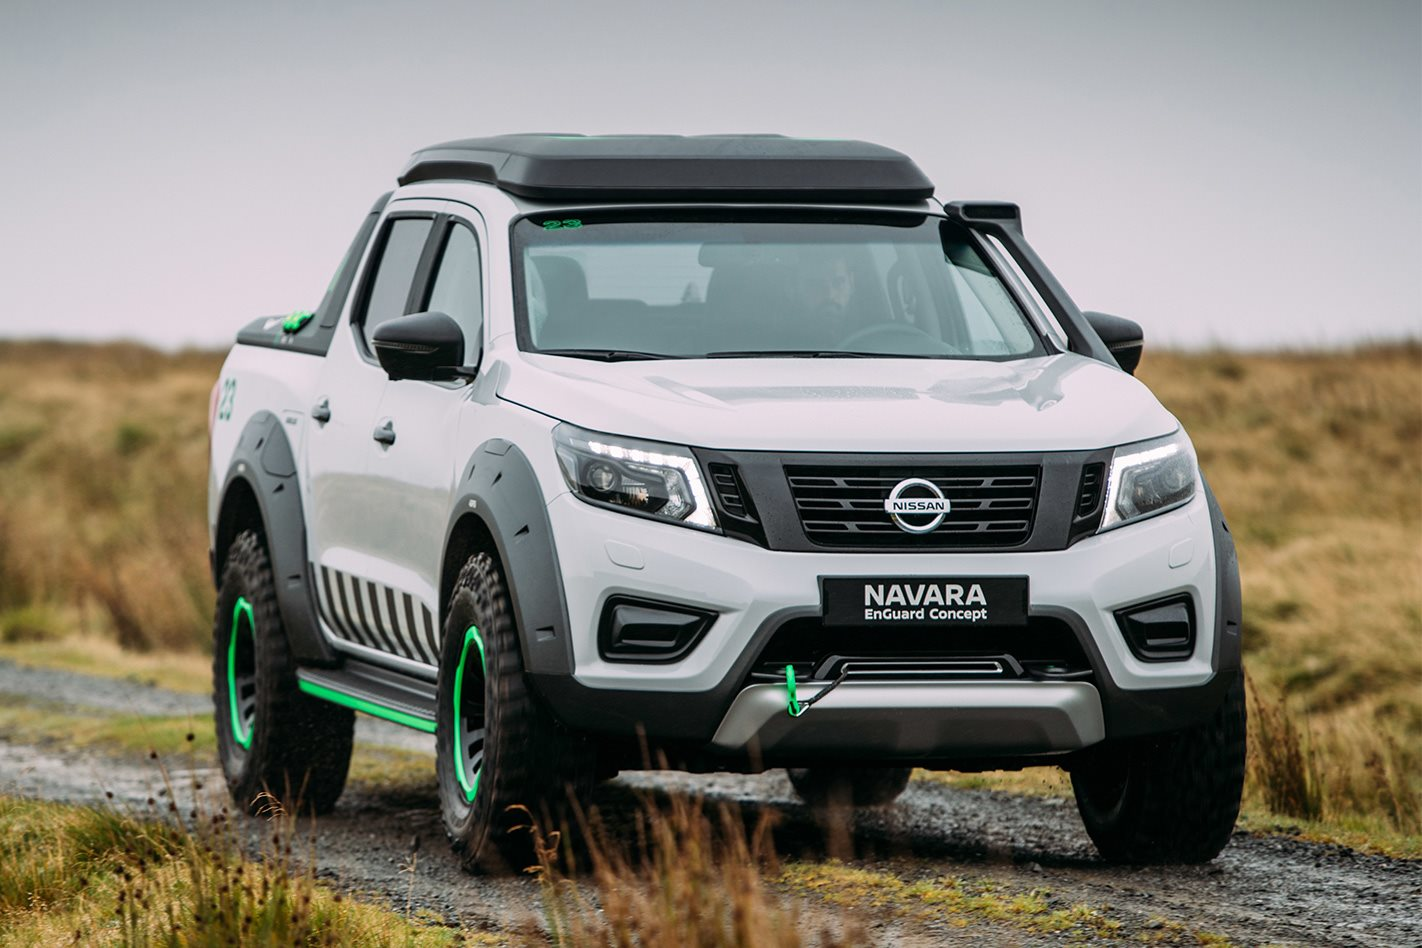 nissan debuts navara enguard concept 4x4 australia. Black Bedroom Furniture Sets. Home Design Ideas